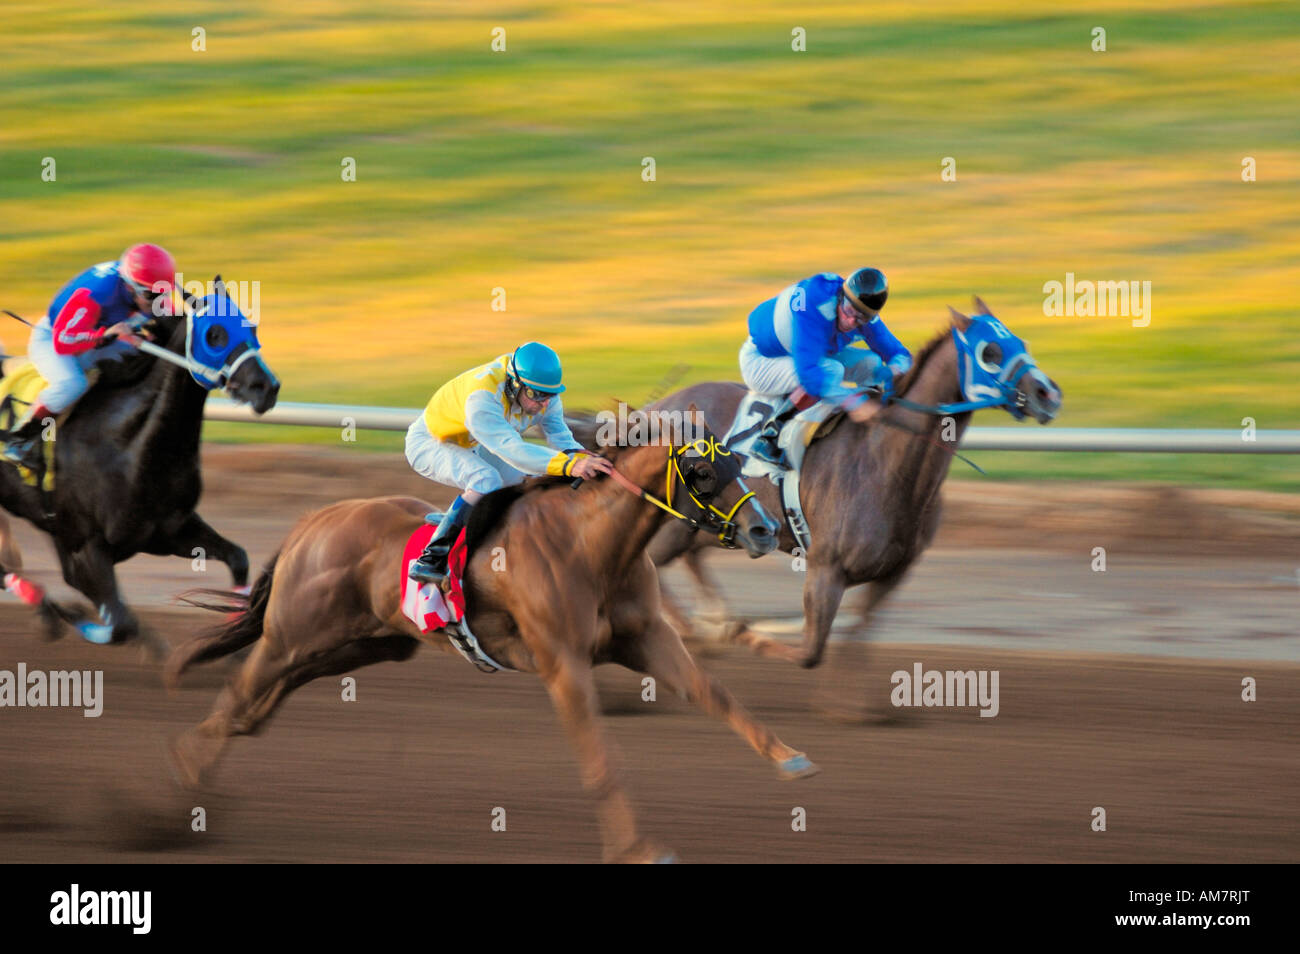 Annual quarter horse races held at the Red Mile track in Lexington ...